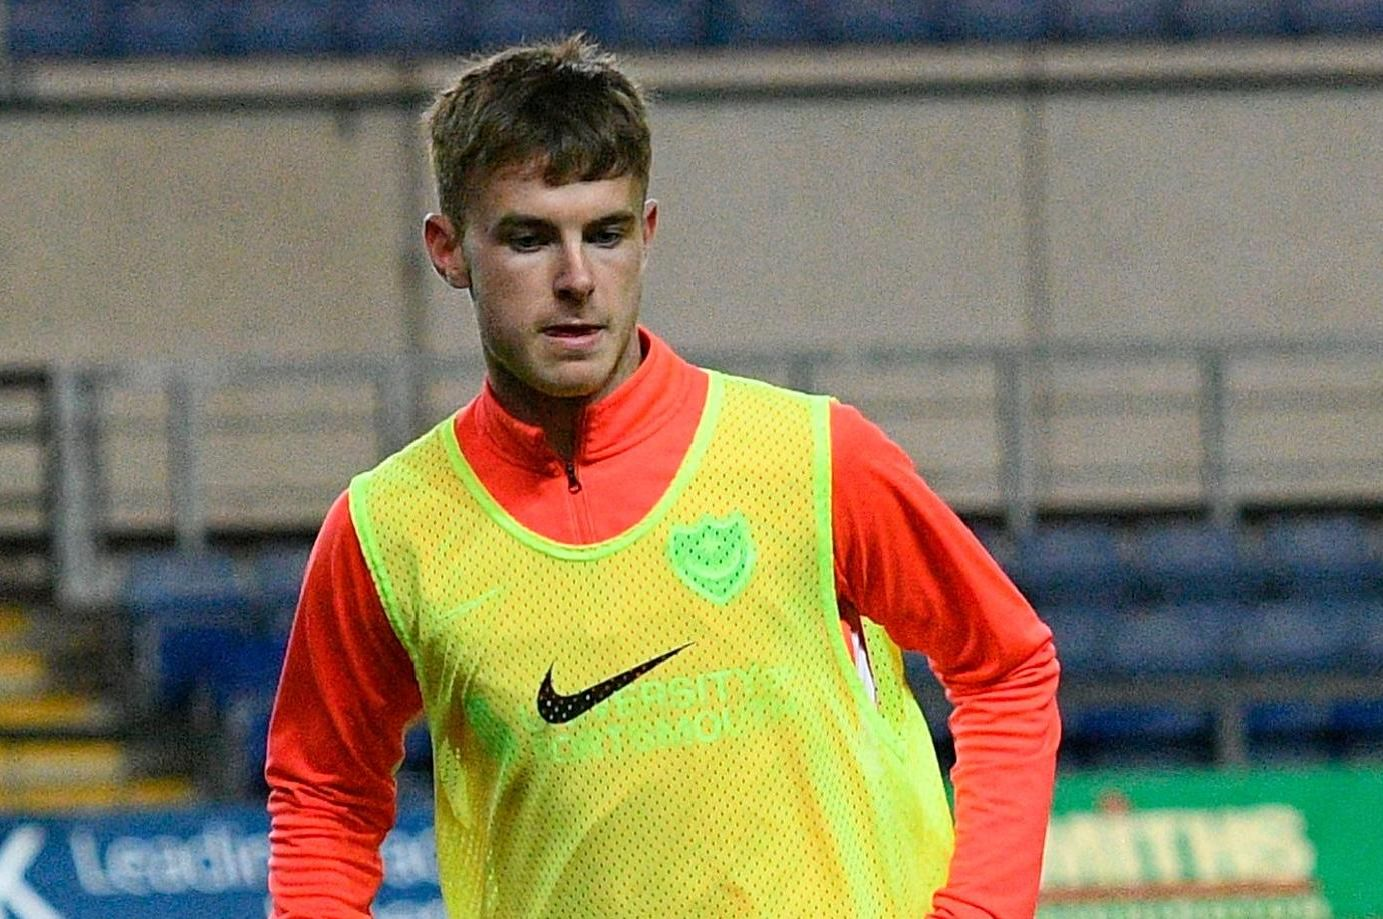 Kenny Jackett handed him his senior debut in the Leasing.com Trophy clash at Oxford last night at the age of 17 years and 14 days